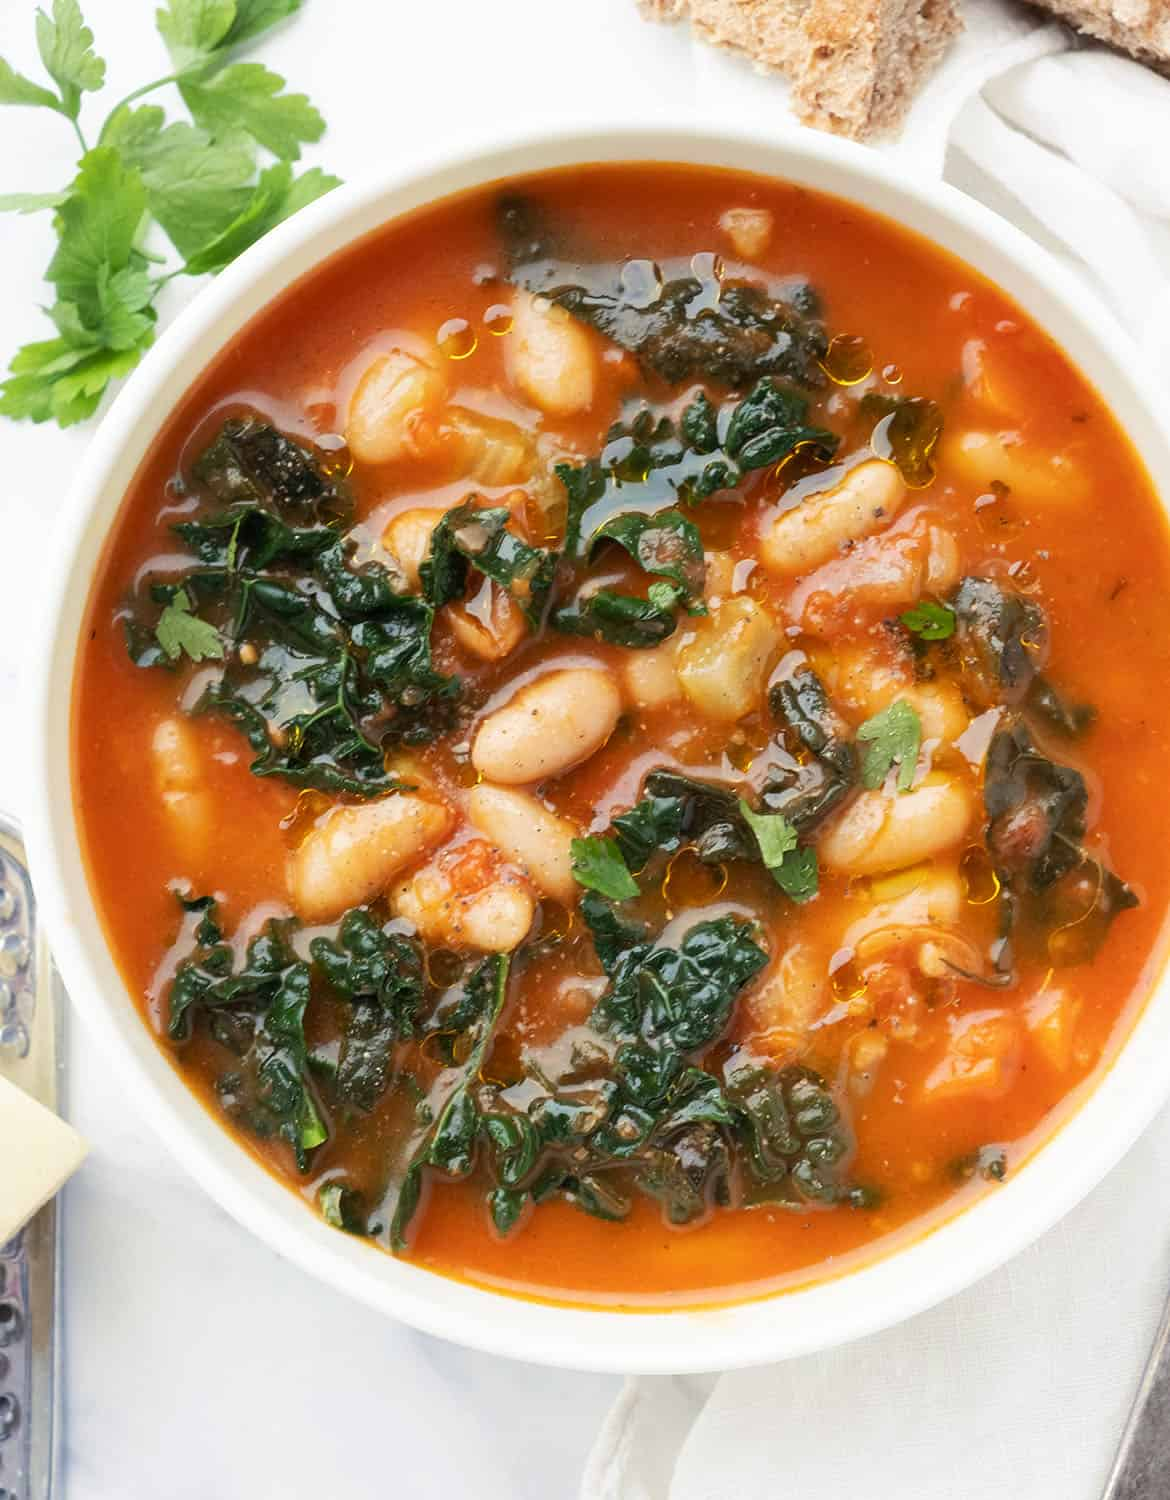 Top view of a bowl of cannellini bean and kale soup over a white background.